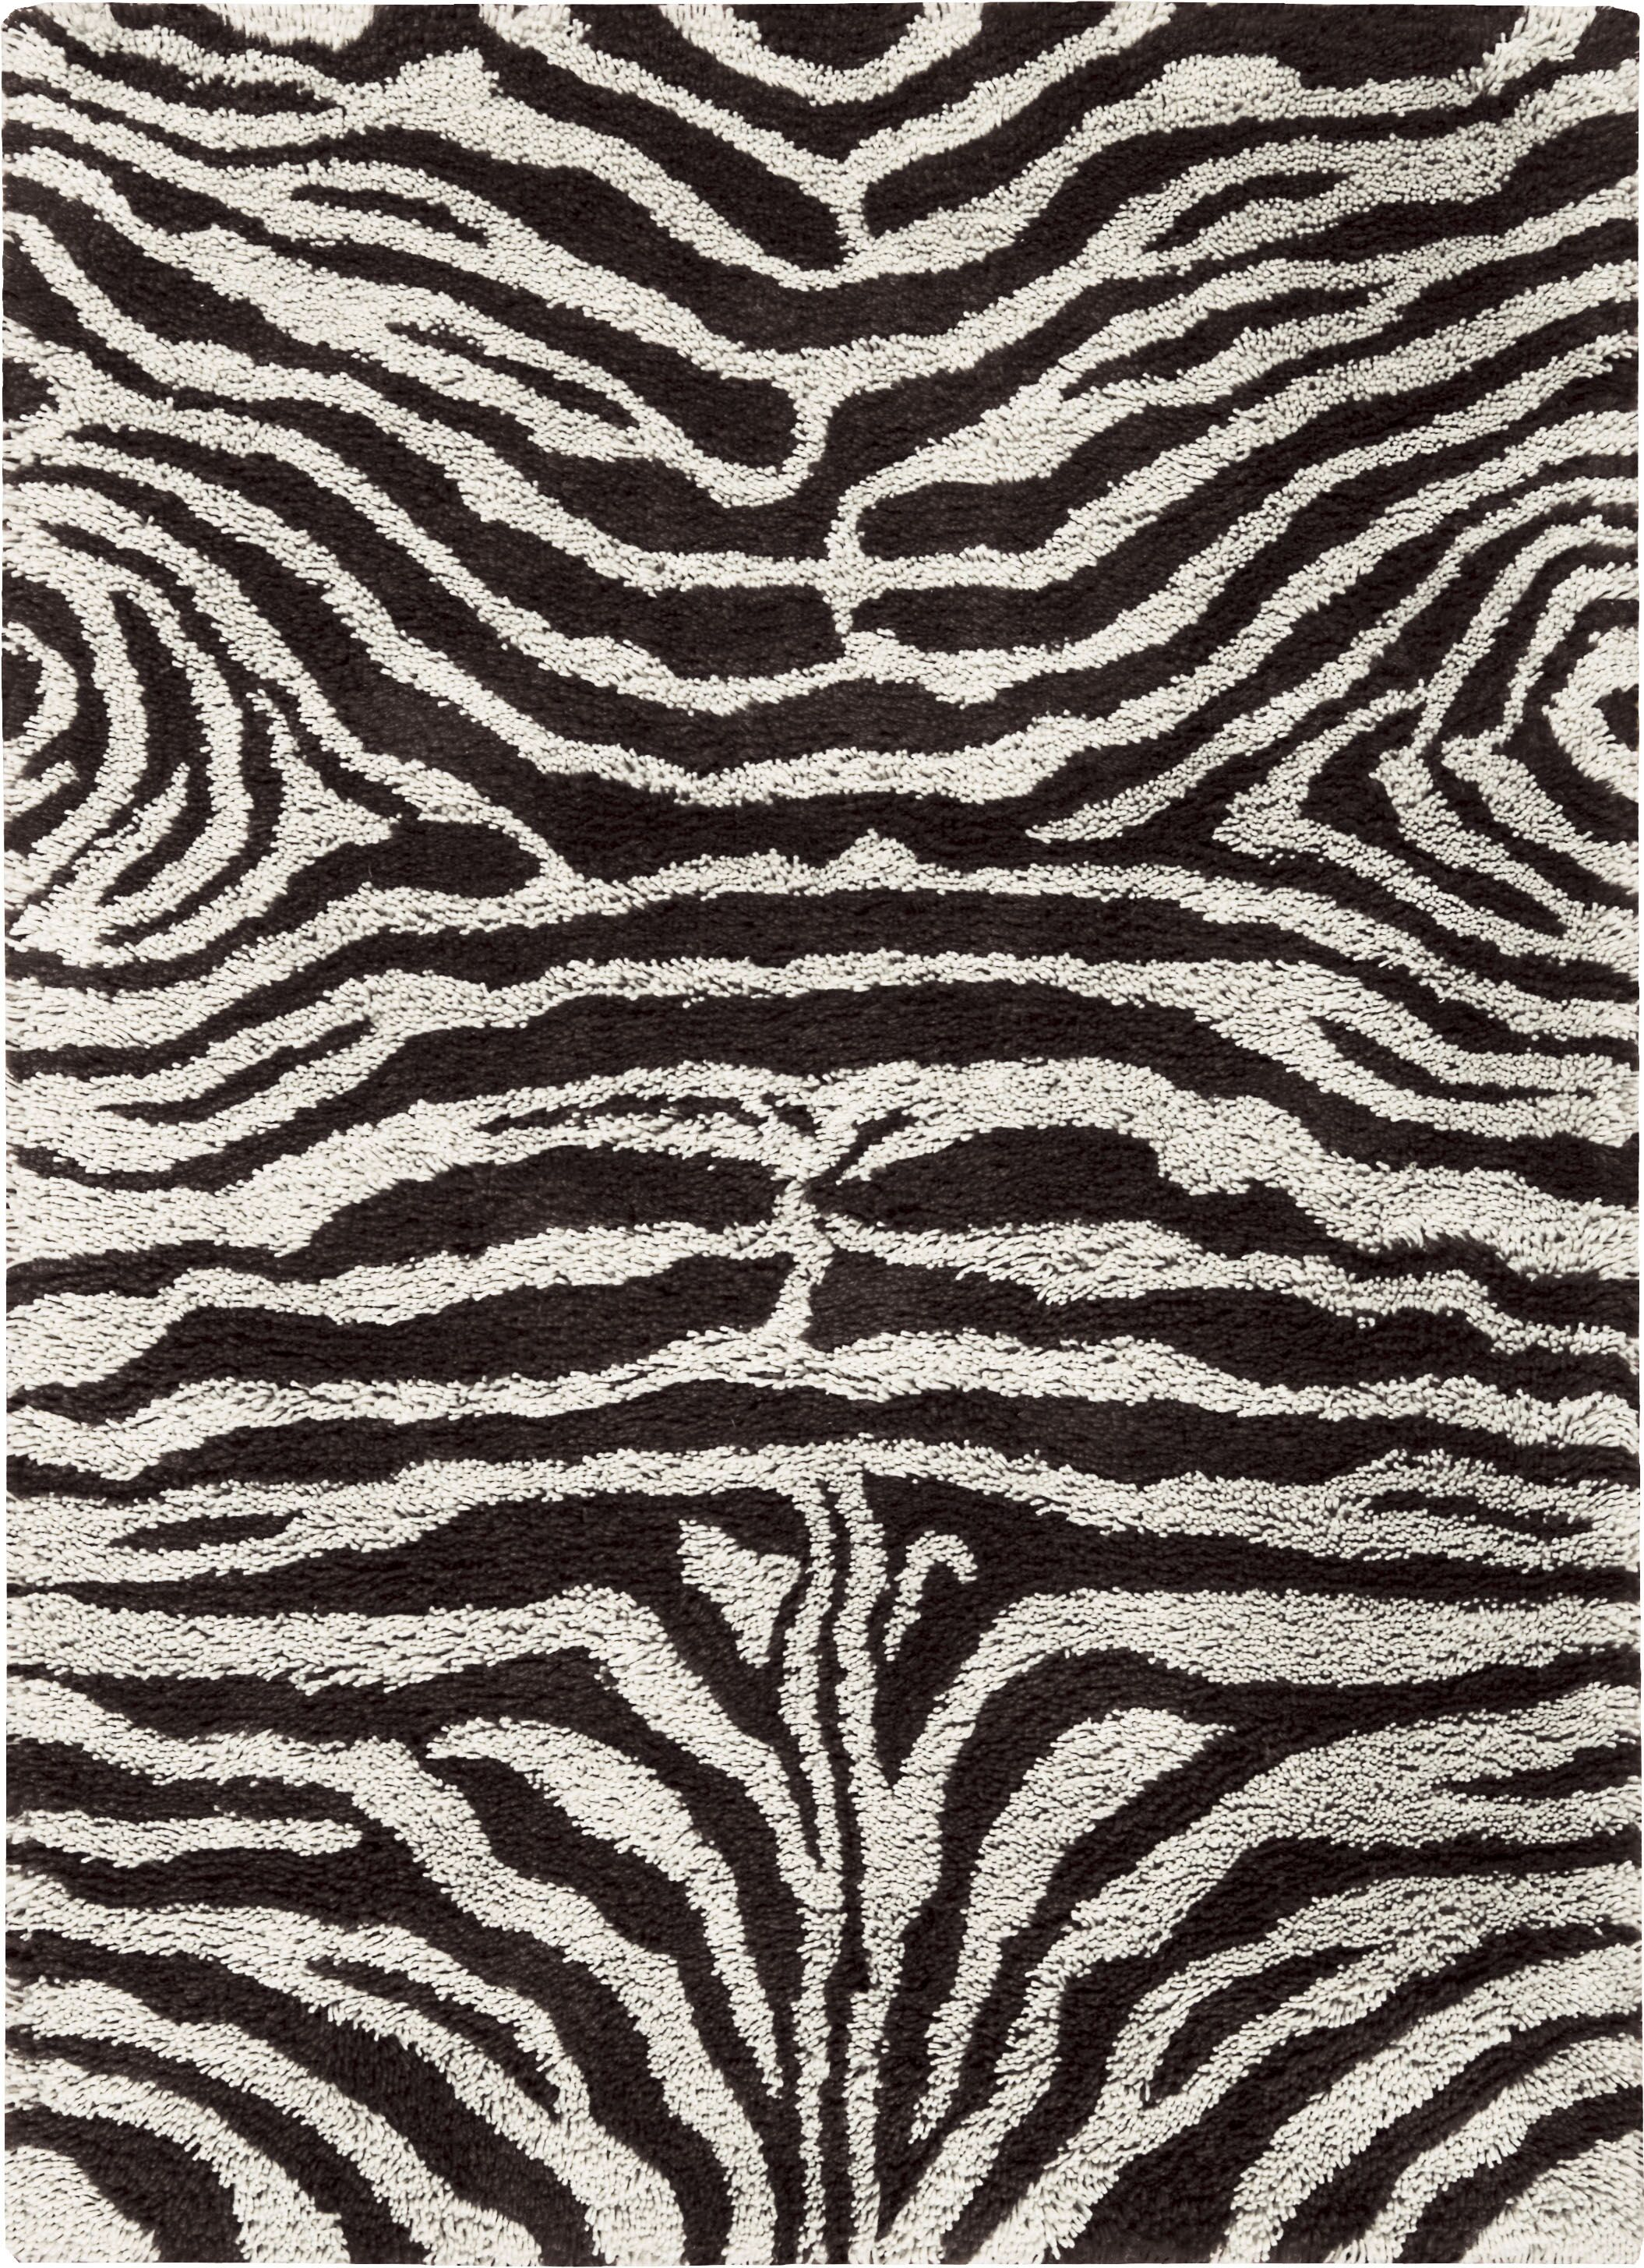 Rosalba Hand-Tufted Black/White Area Rug Rug Size: Rectangle 7'6